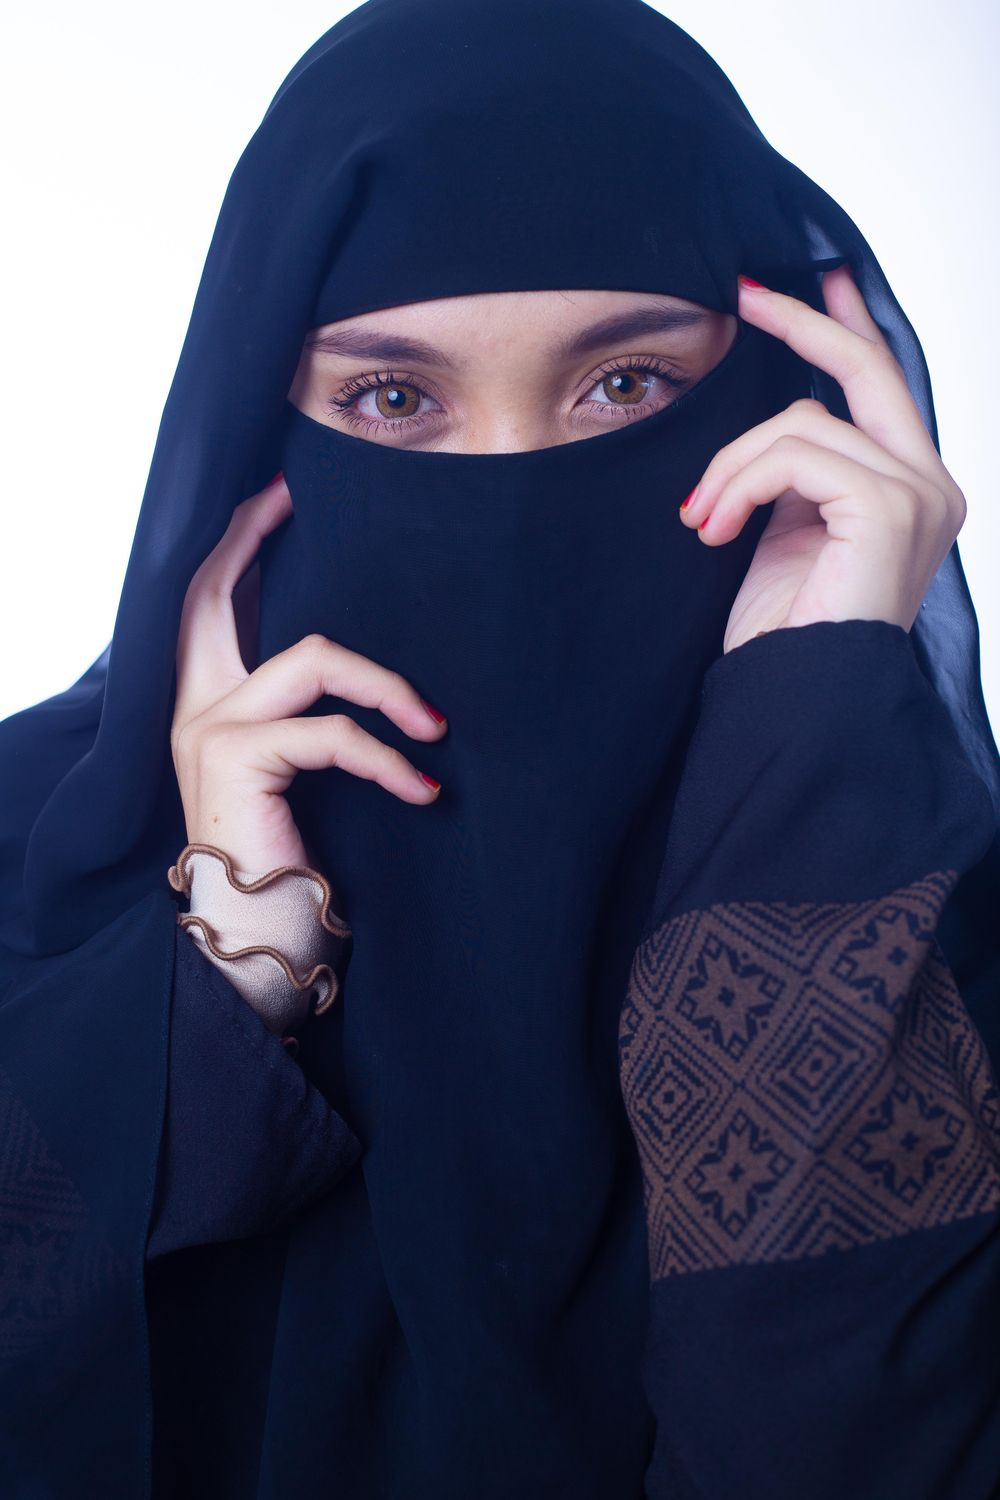 Women in Niqab - image 1 - student project